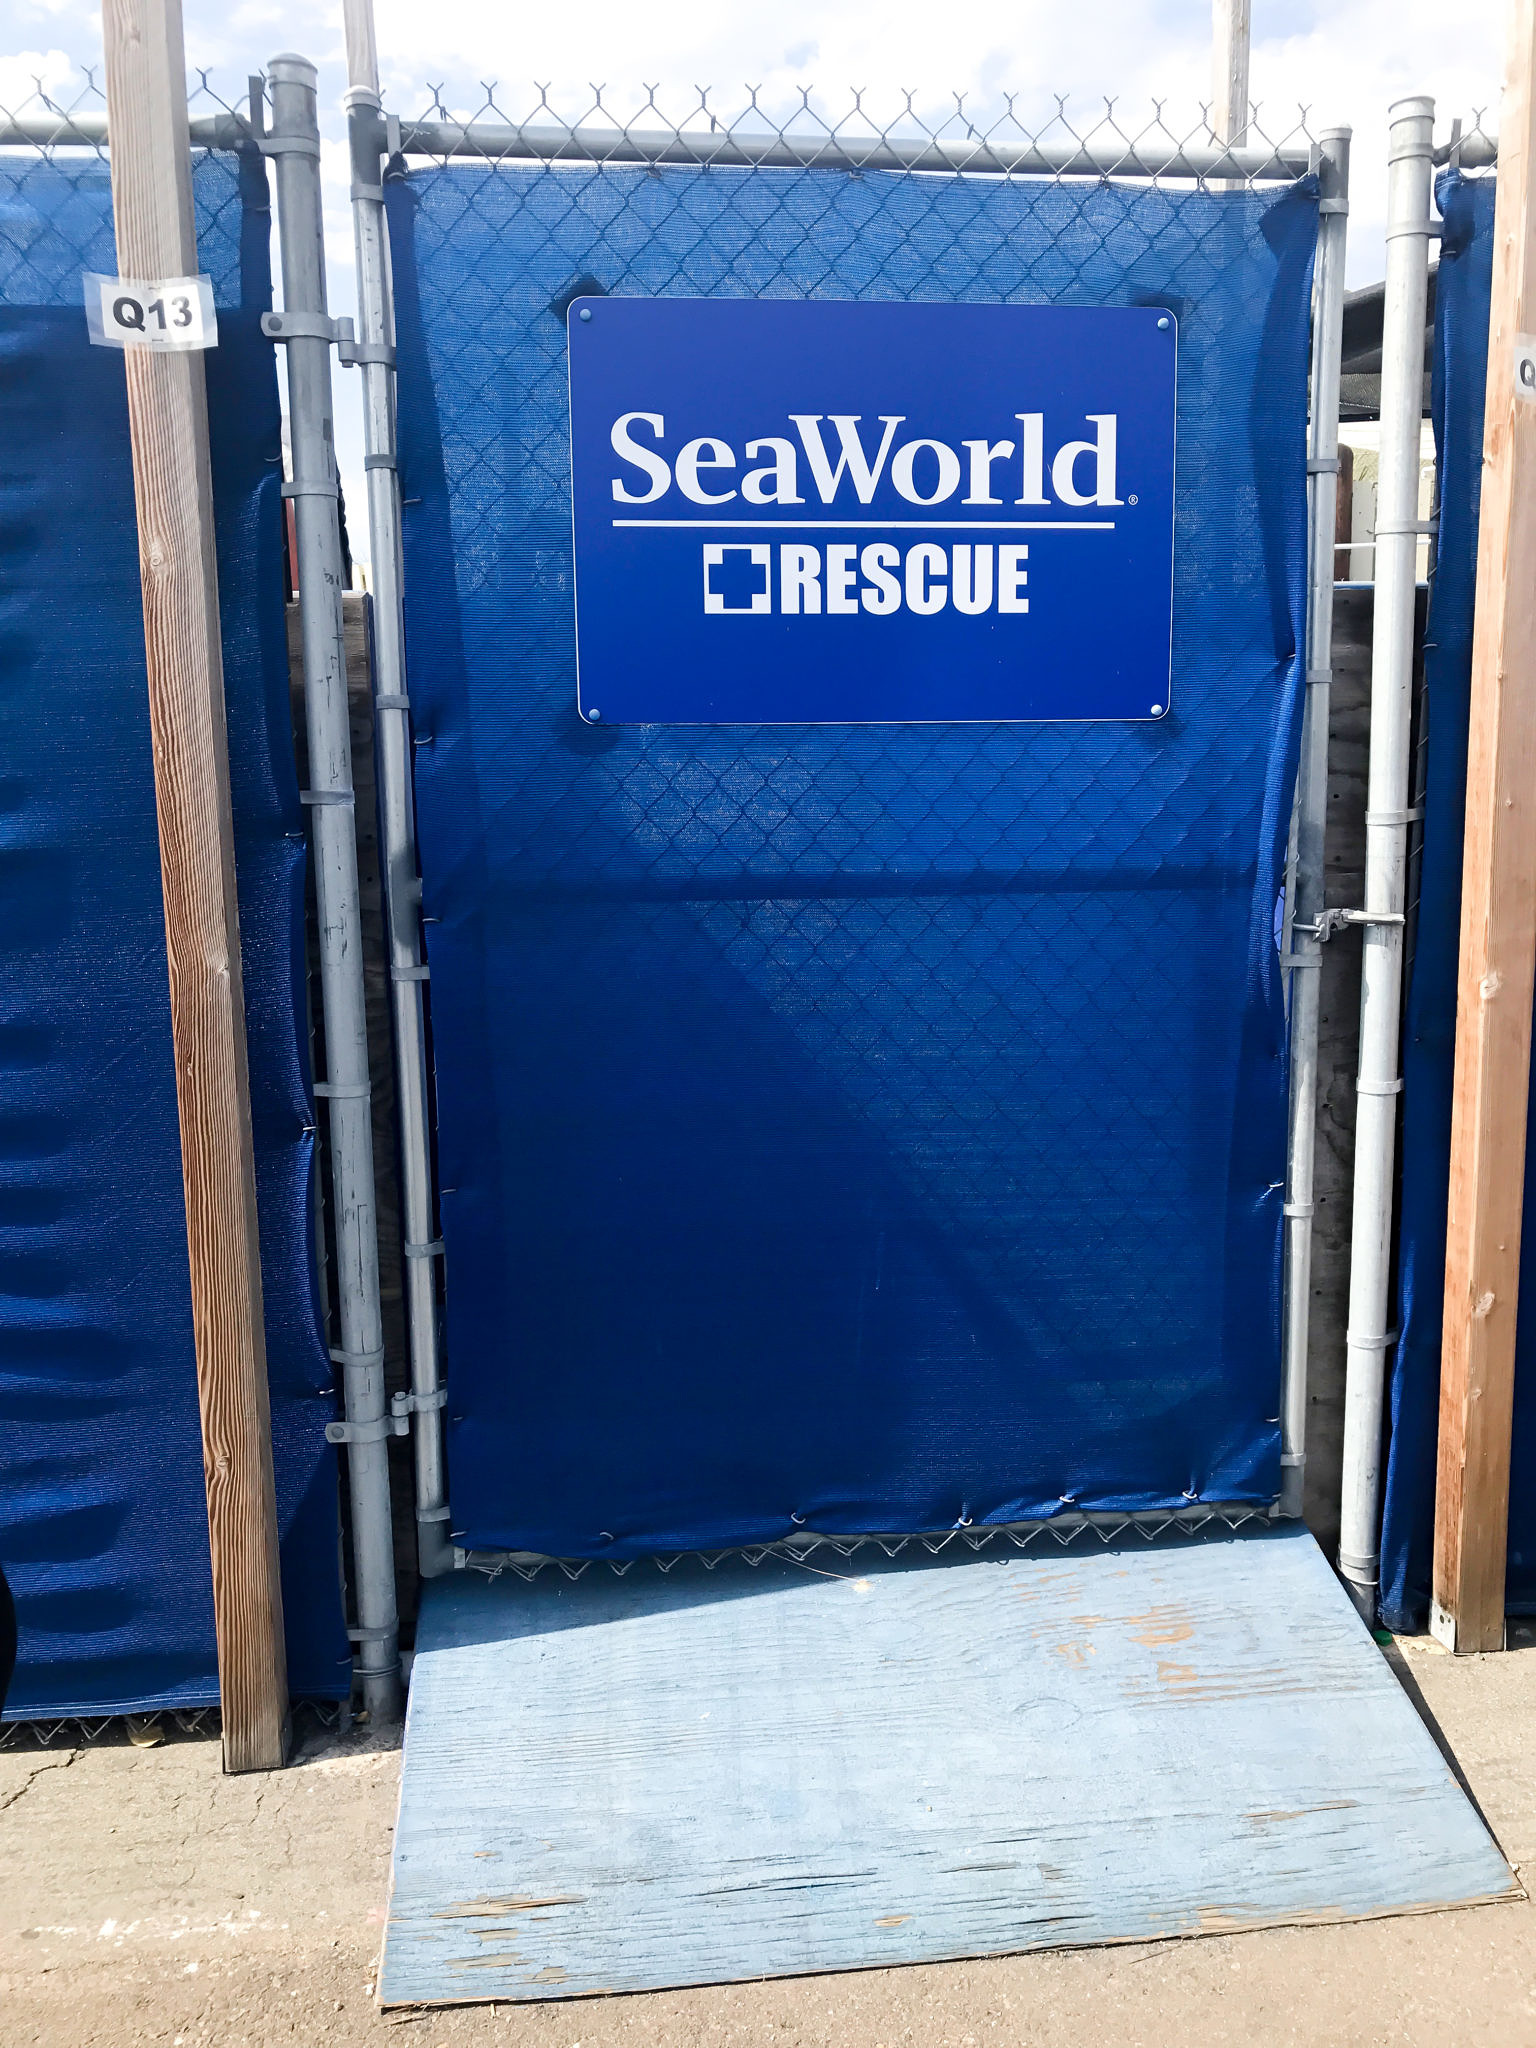 Behind The Scenes Family Day at SeaWord's San Diego with The Moms + SeaWorld Family 4-Pack Ticket Giveaway!!!